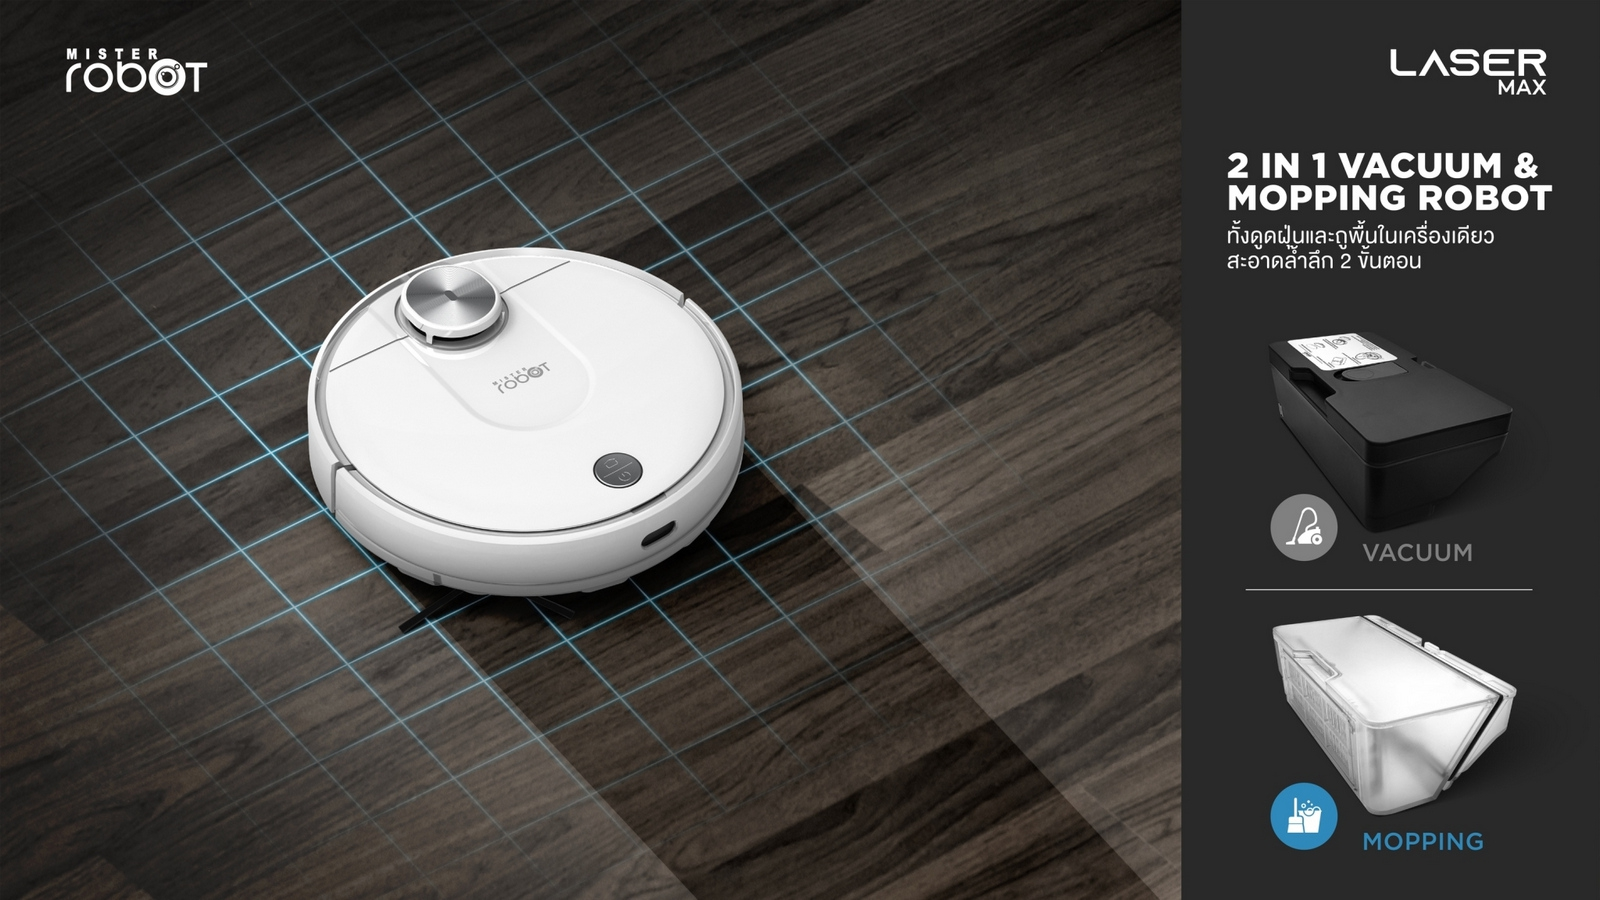 Mister Robot LASER MAX Feature Two-in-One Vacuum and Mopping Robot